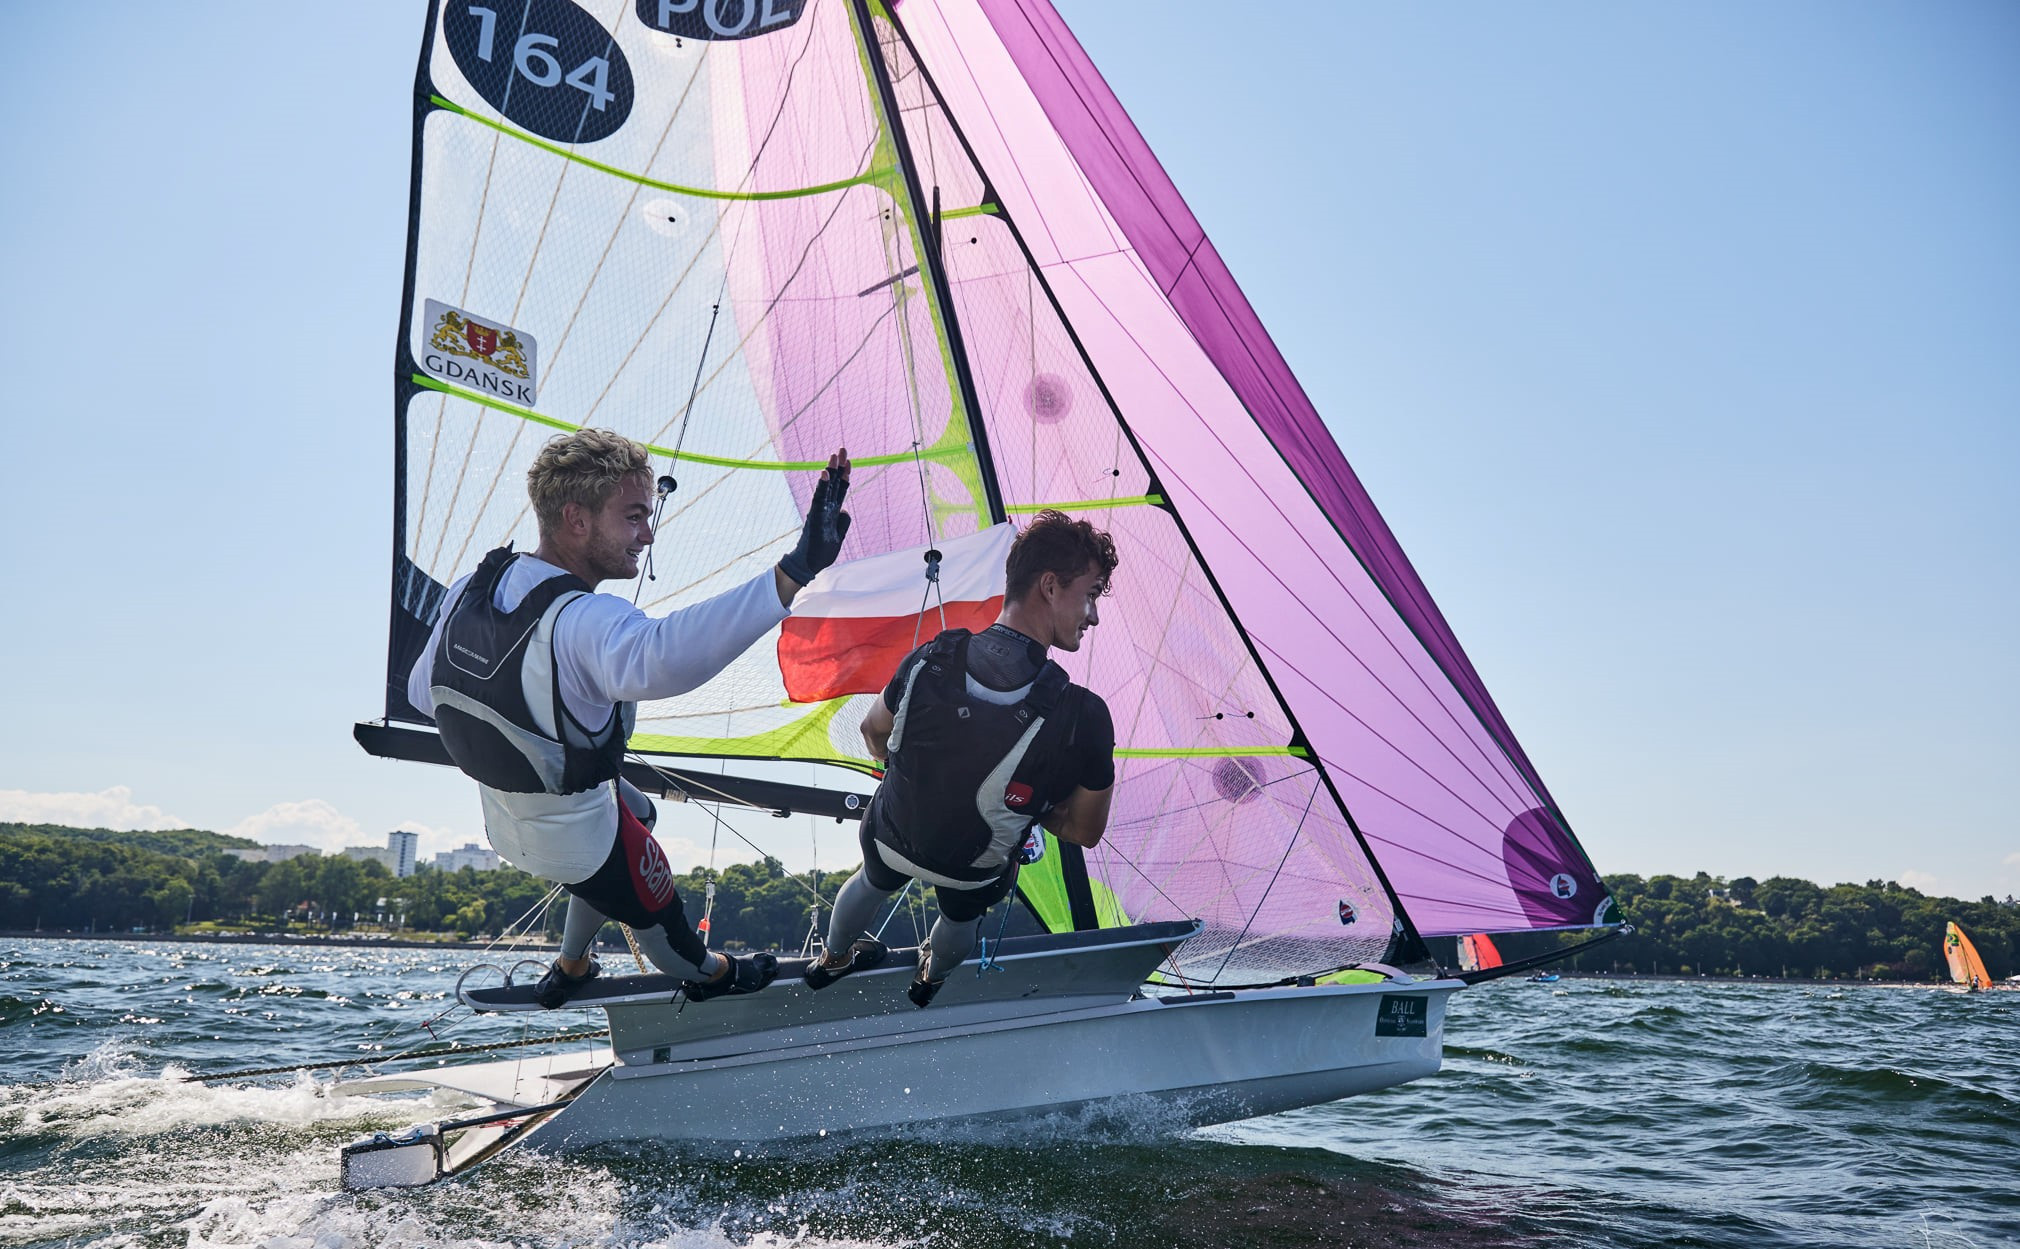 Home sailors triumph in 49er class at Junior World Championships in Gdynia